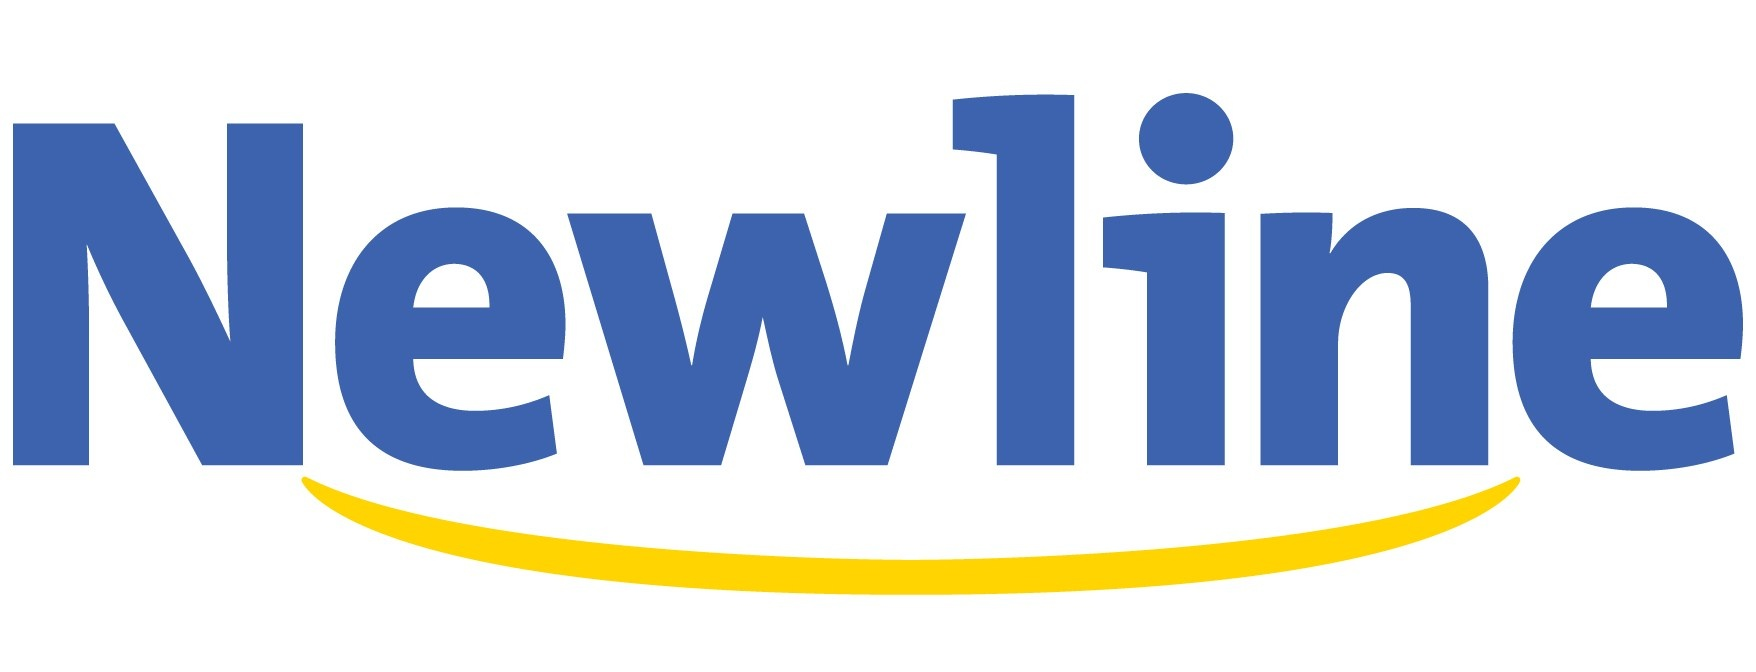 Newline-Logo-FINAL-2.jpg